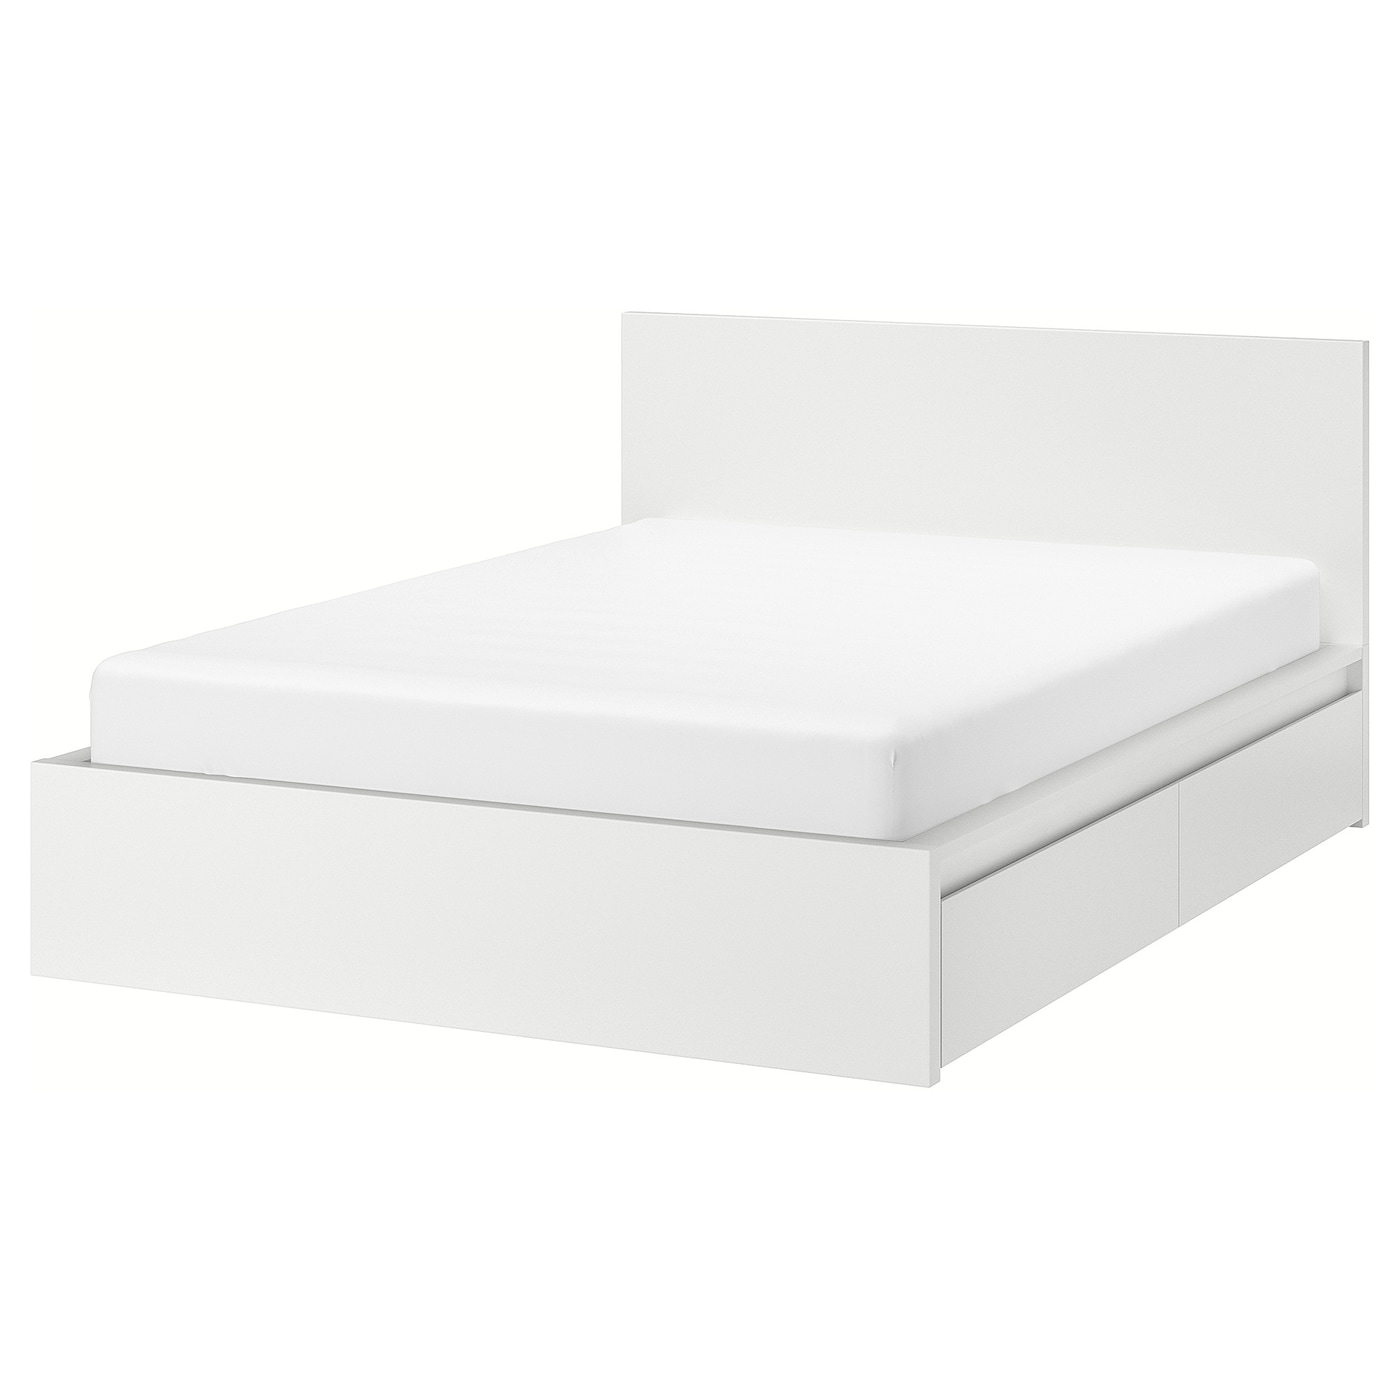 Picture of: Malm Bed Frame High W 4 Storage Boxes White Double Ikea